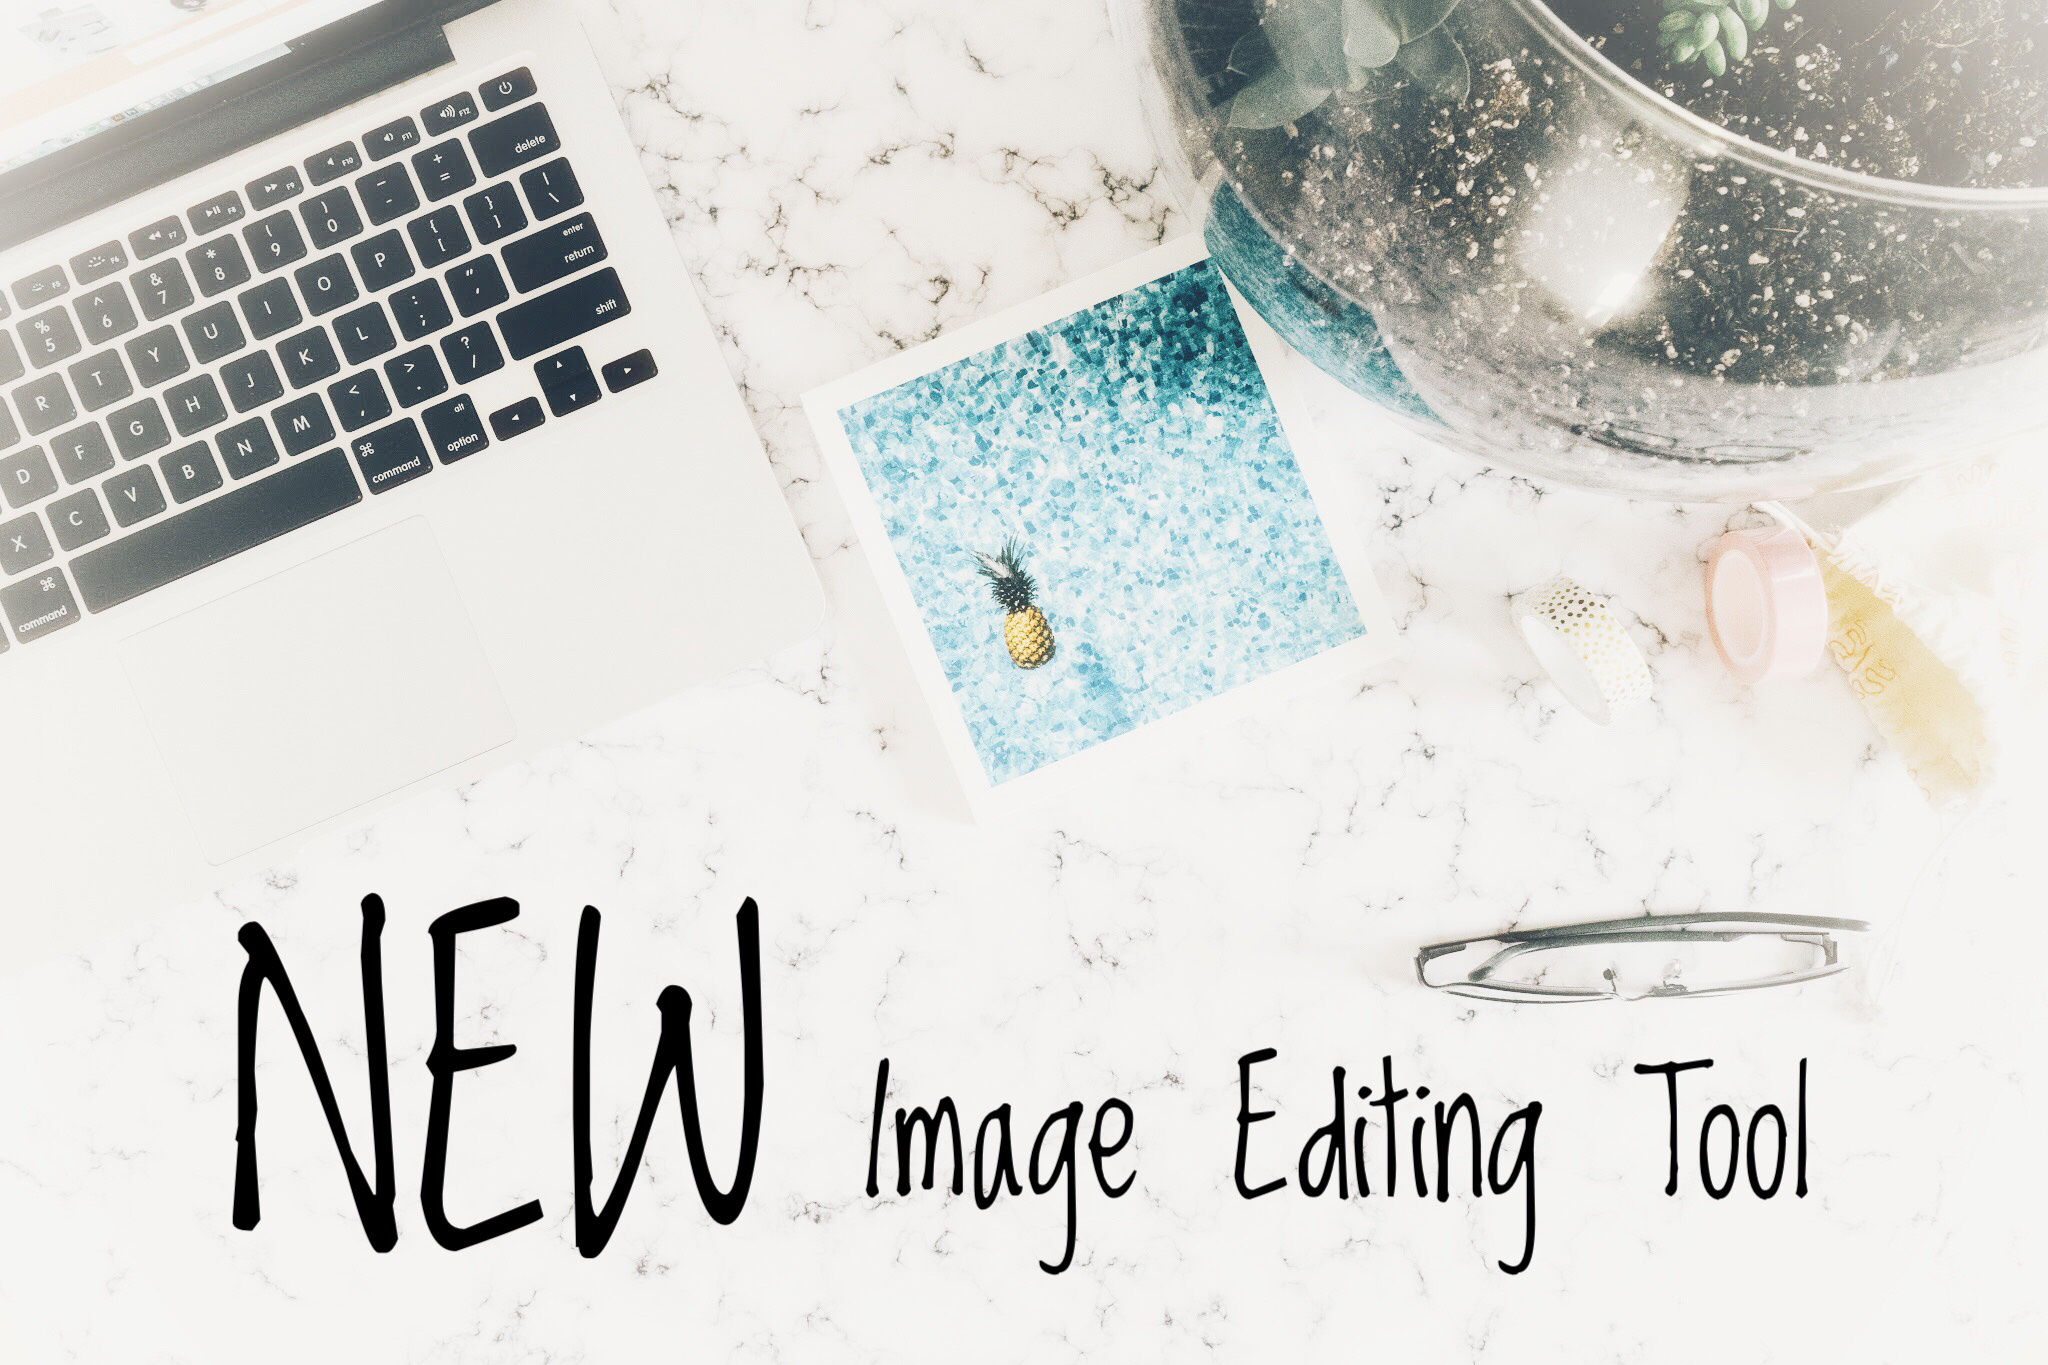 NEW! Edit Media Tool for Post Images